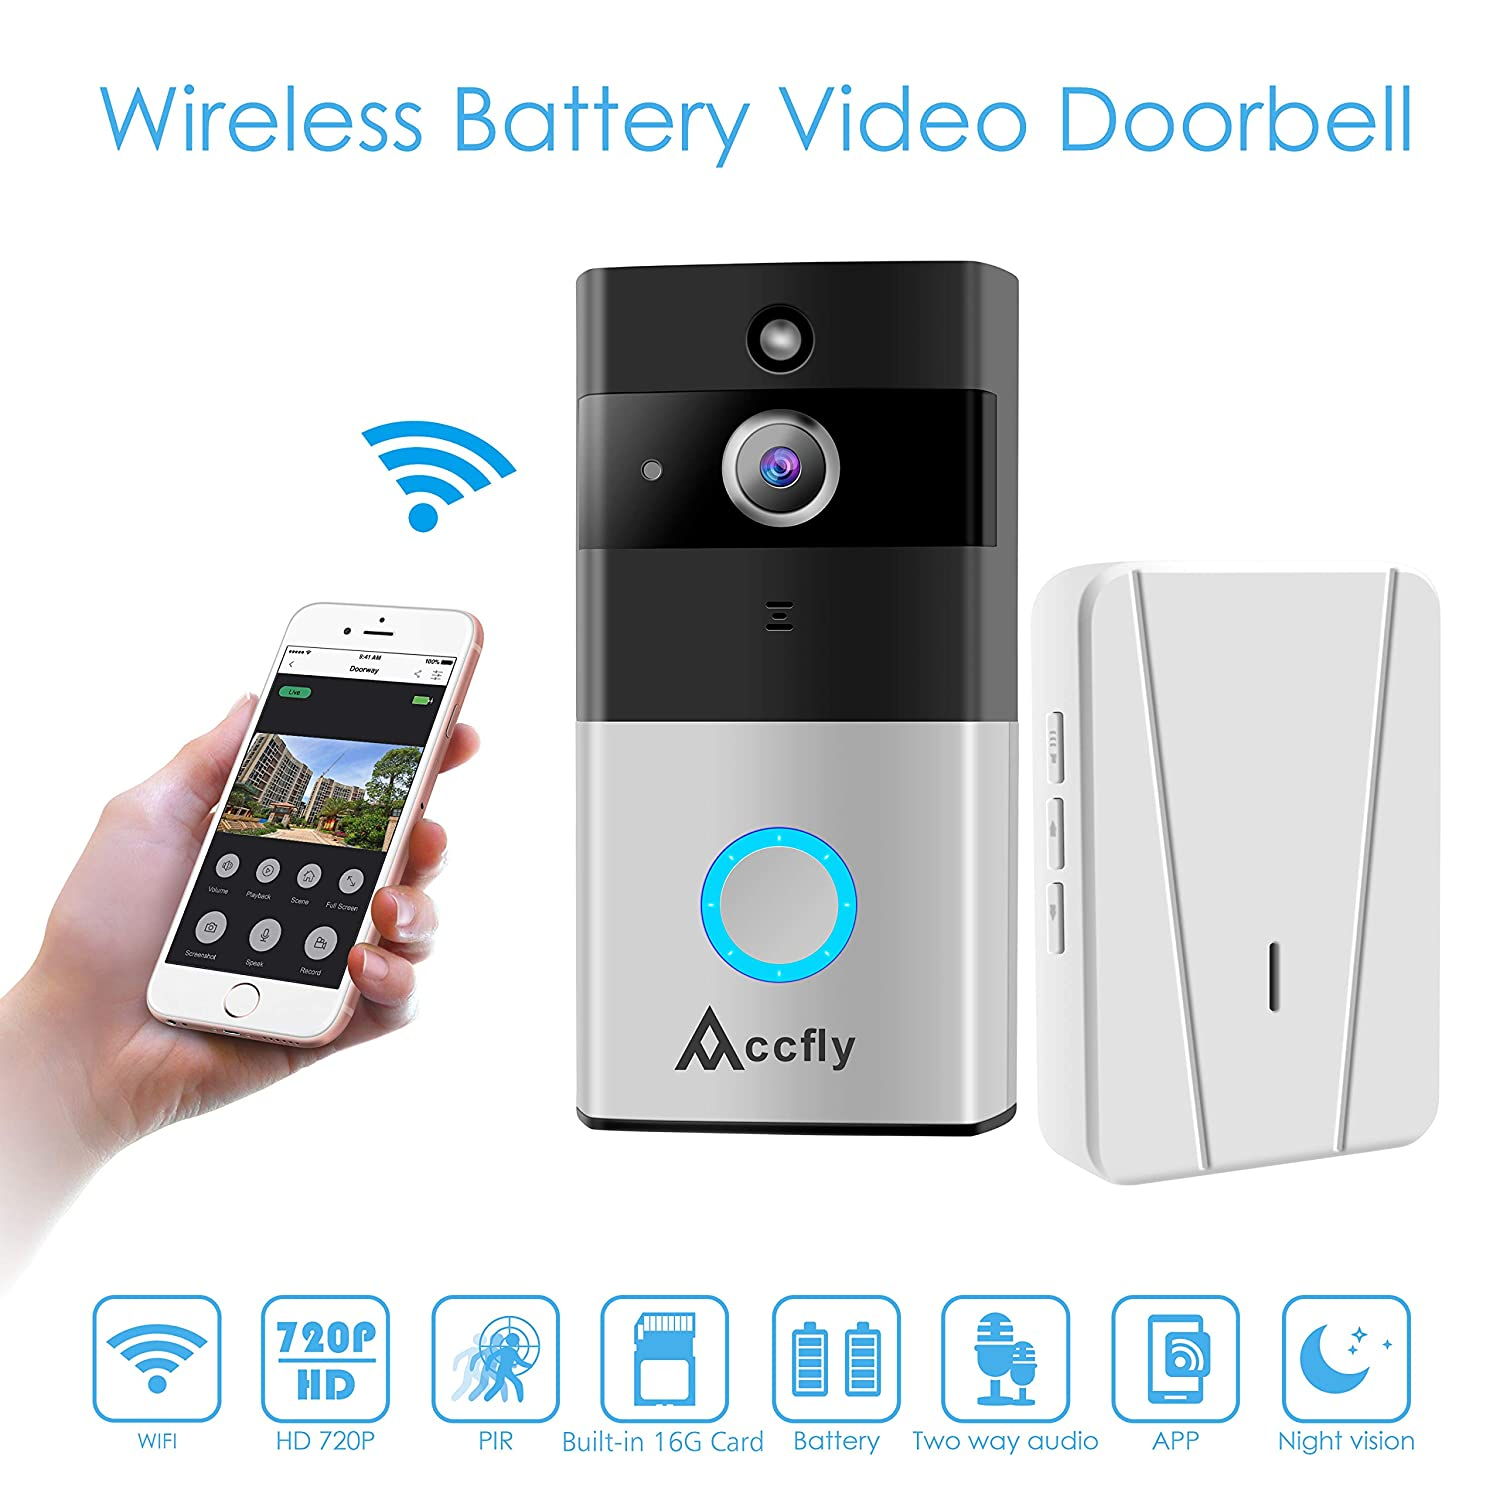 Video Doorbell, Accfly 720P HD WIFI Security Camera: Amazon.co.uk: Camera &  Photo